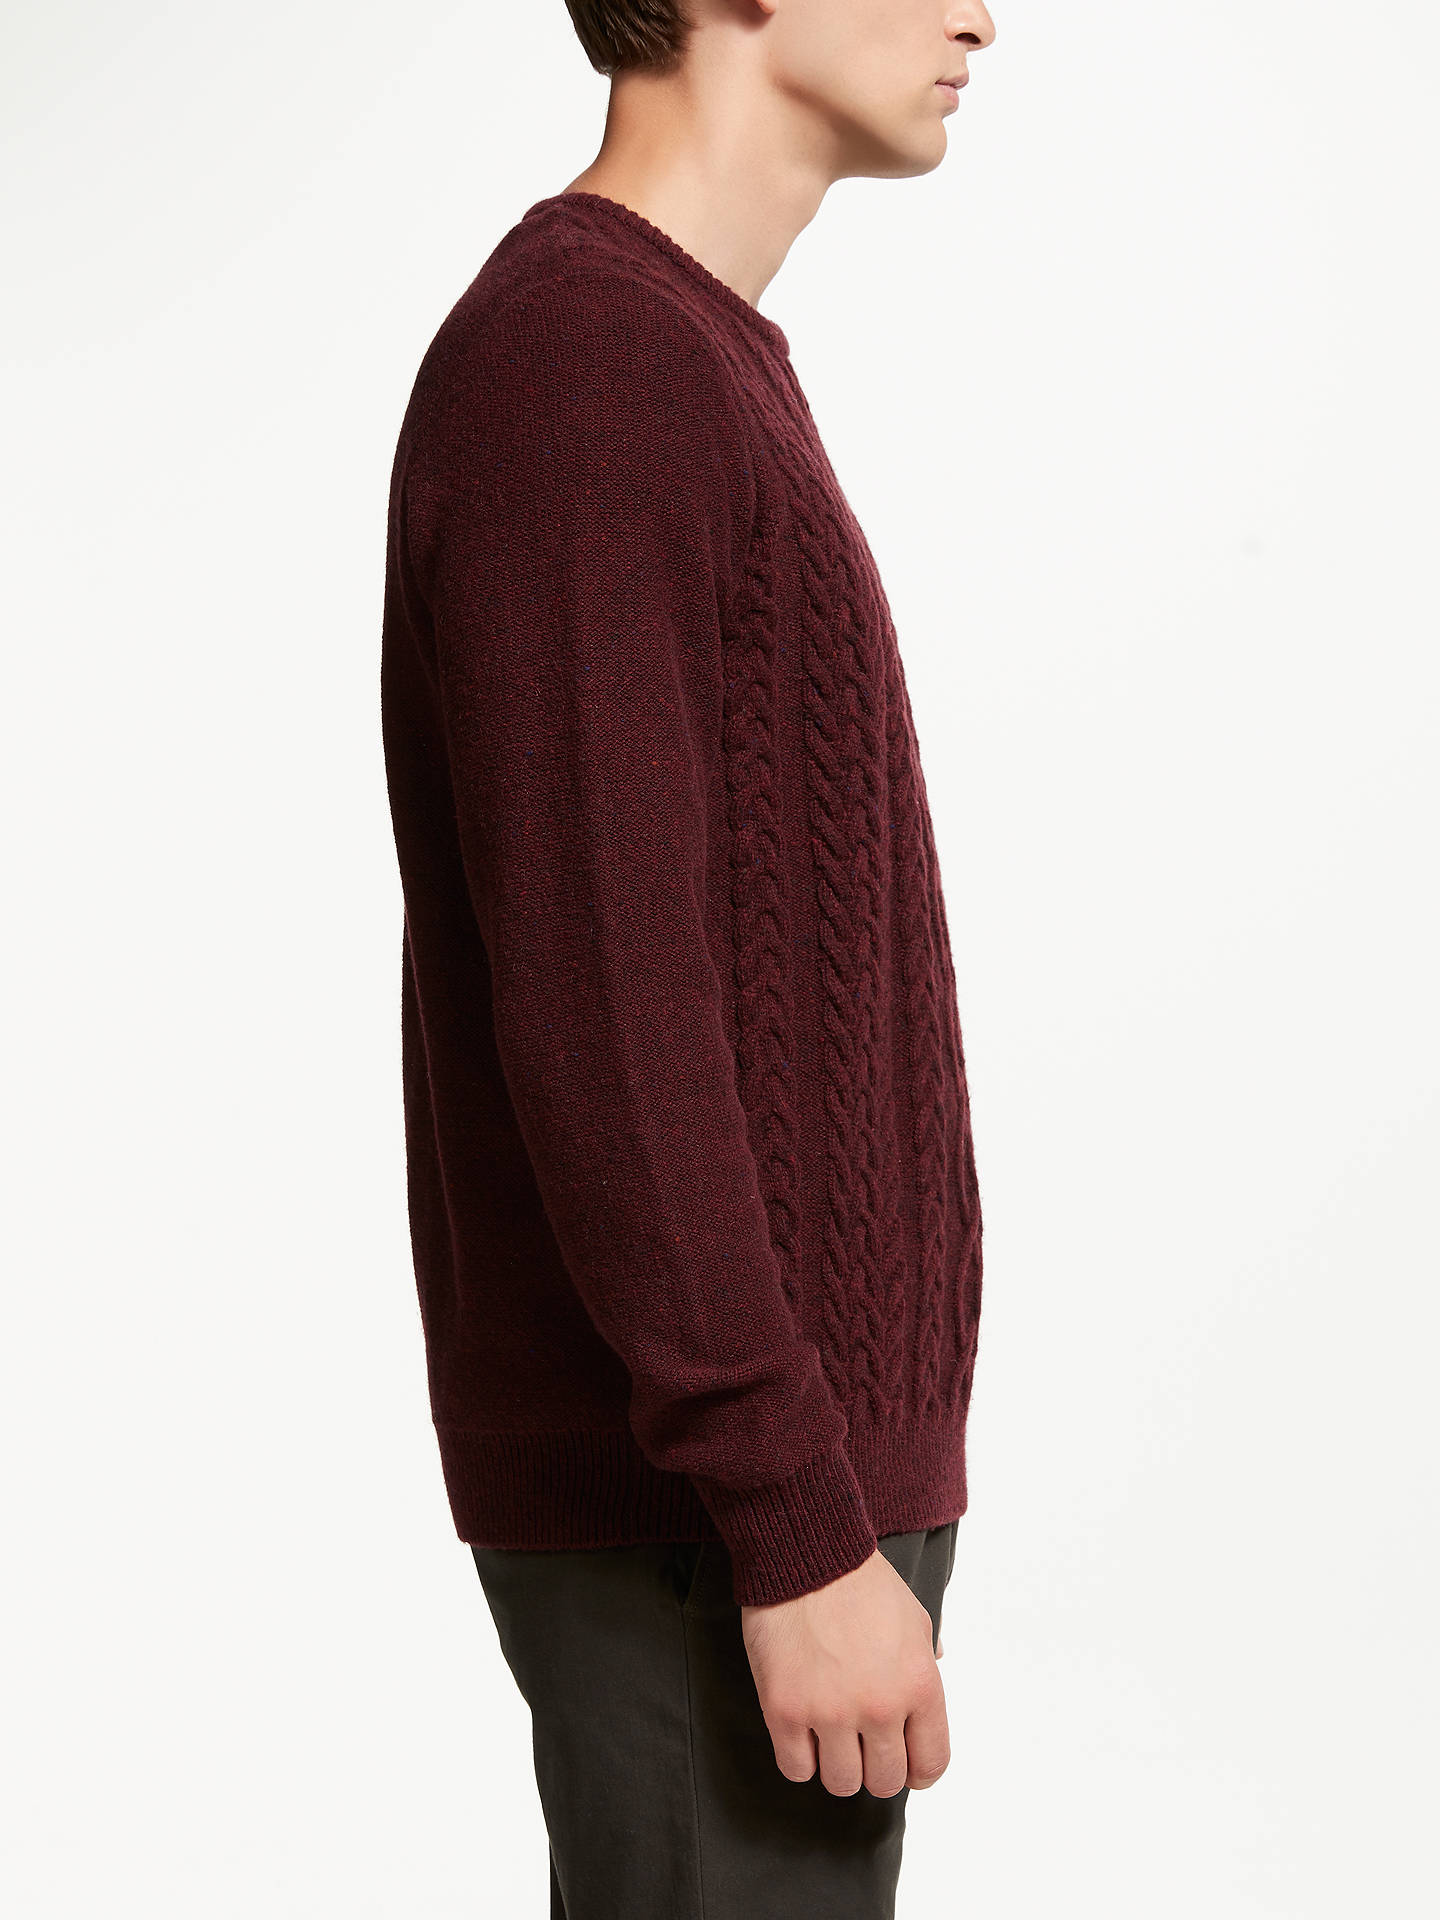 BuyJohn Lewis & Partners Cable Crew Neck Jumper, Red, L Online at johnlewis.com